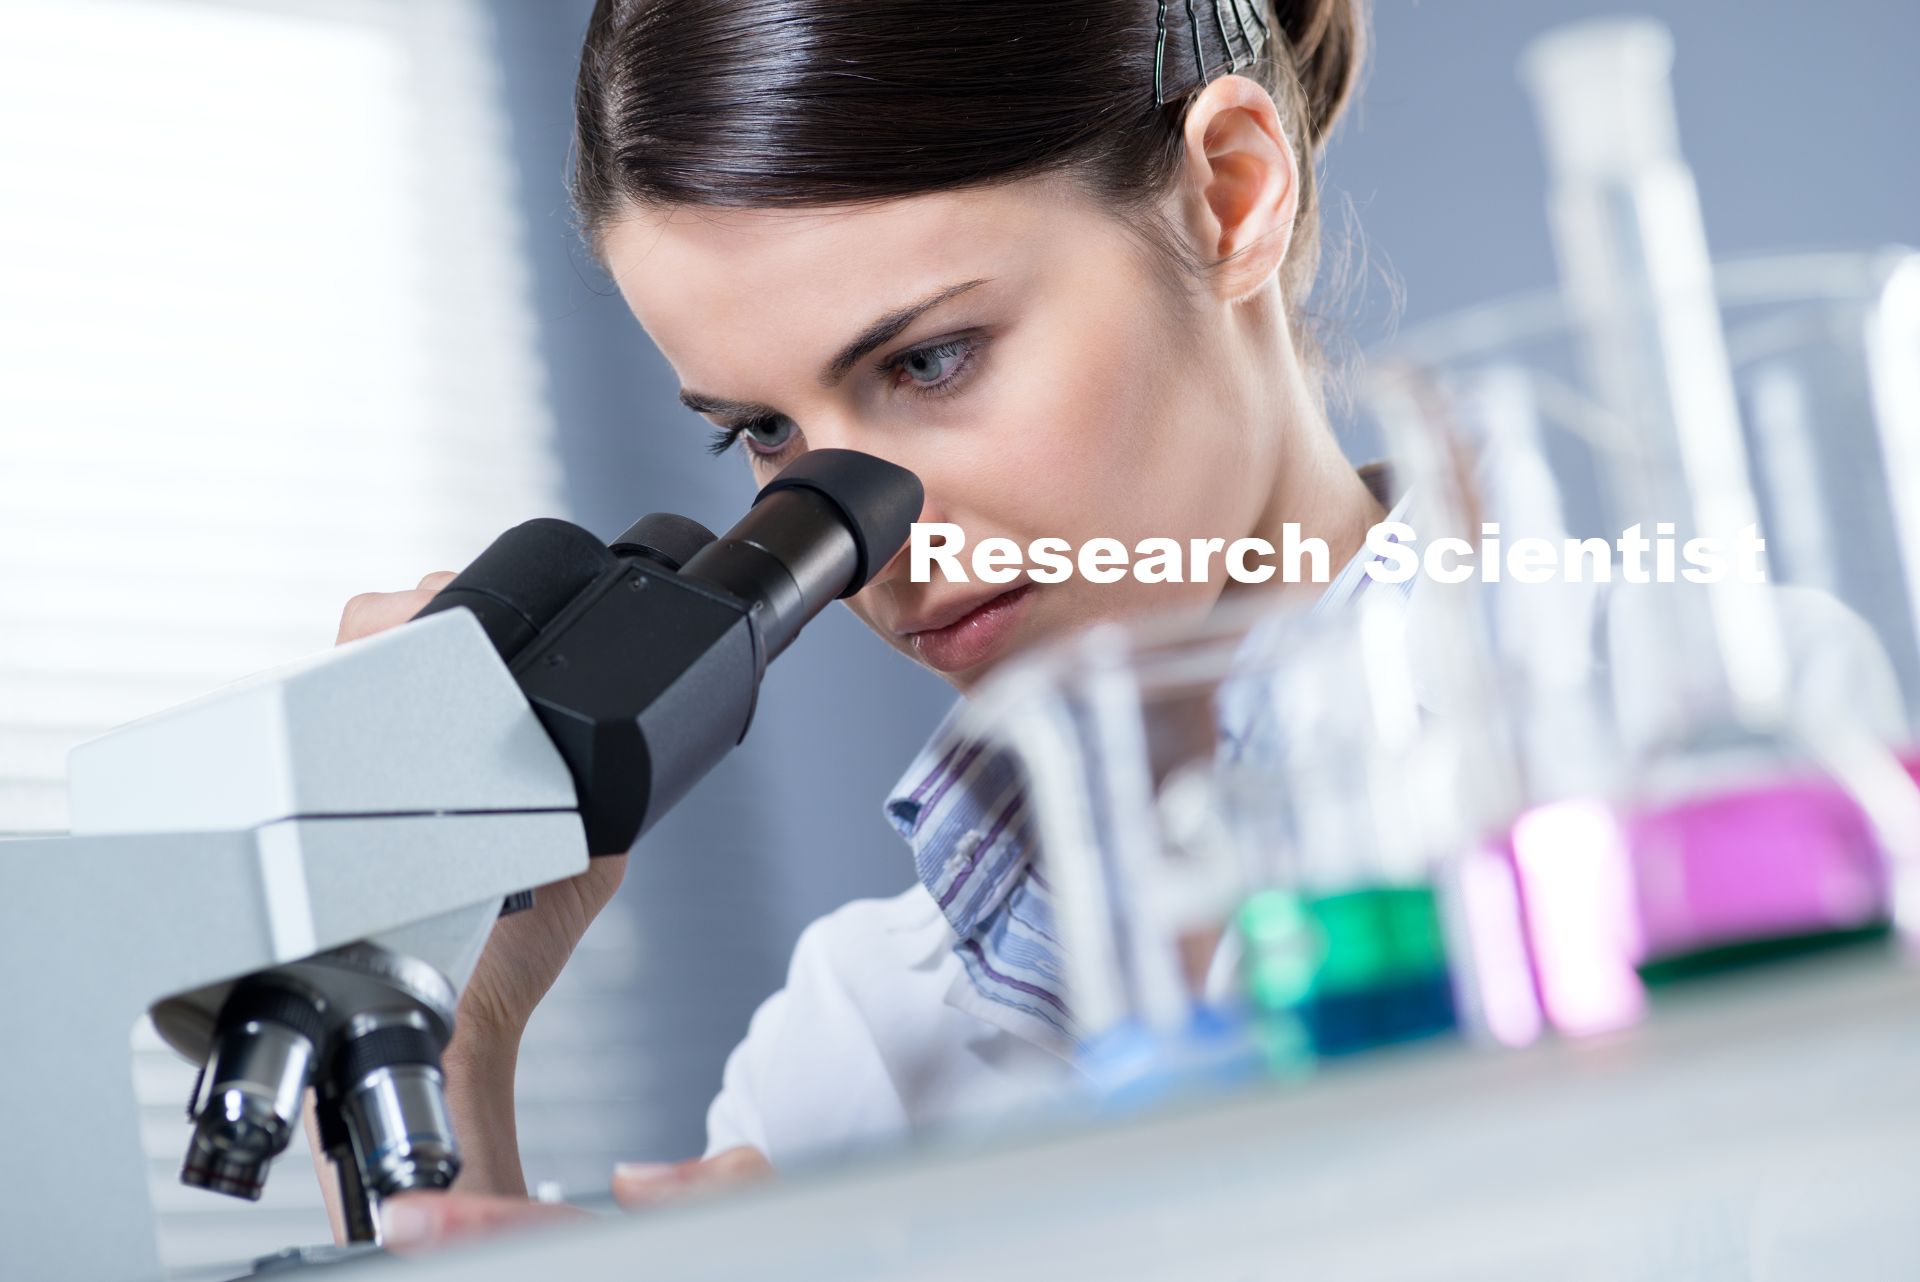 Female Researcher Using Microscope_edited.jpg